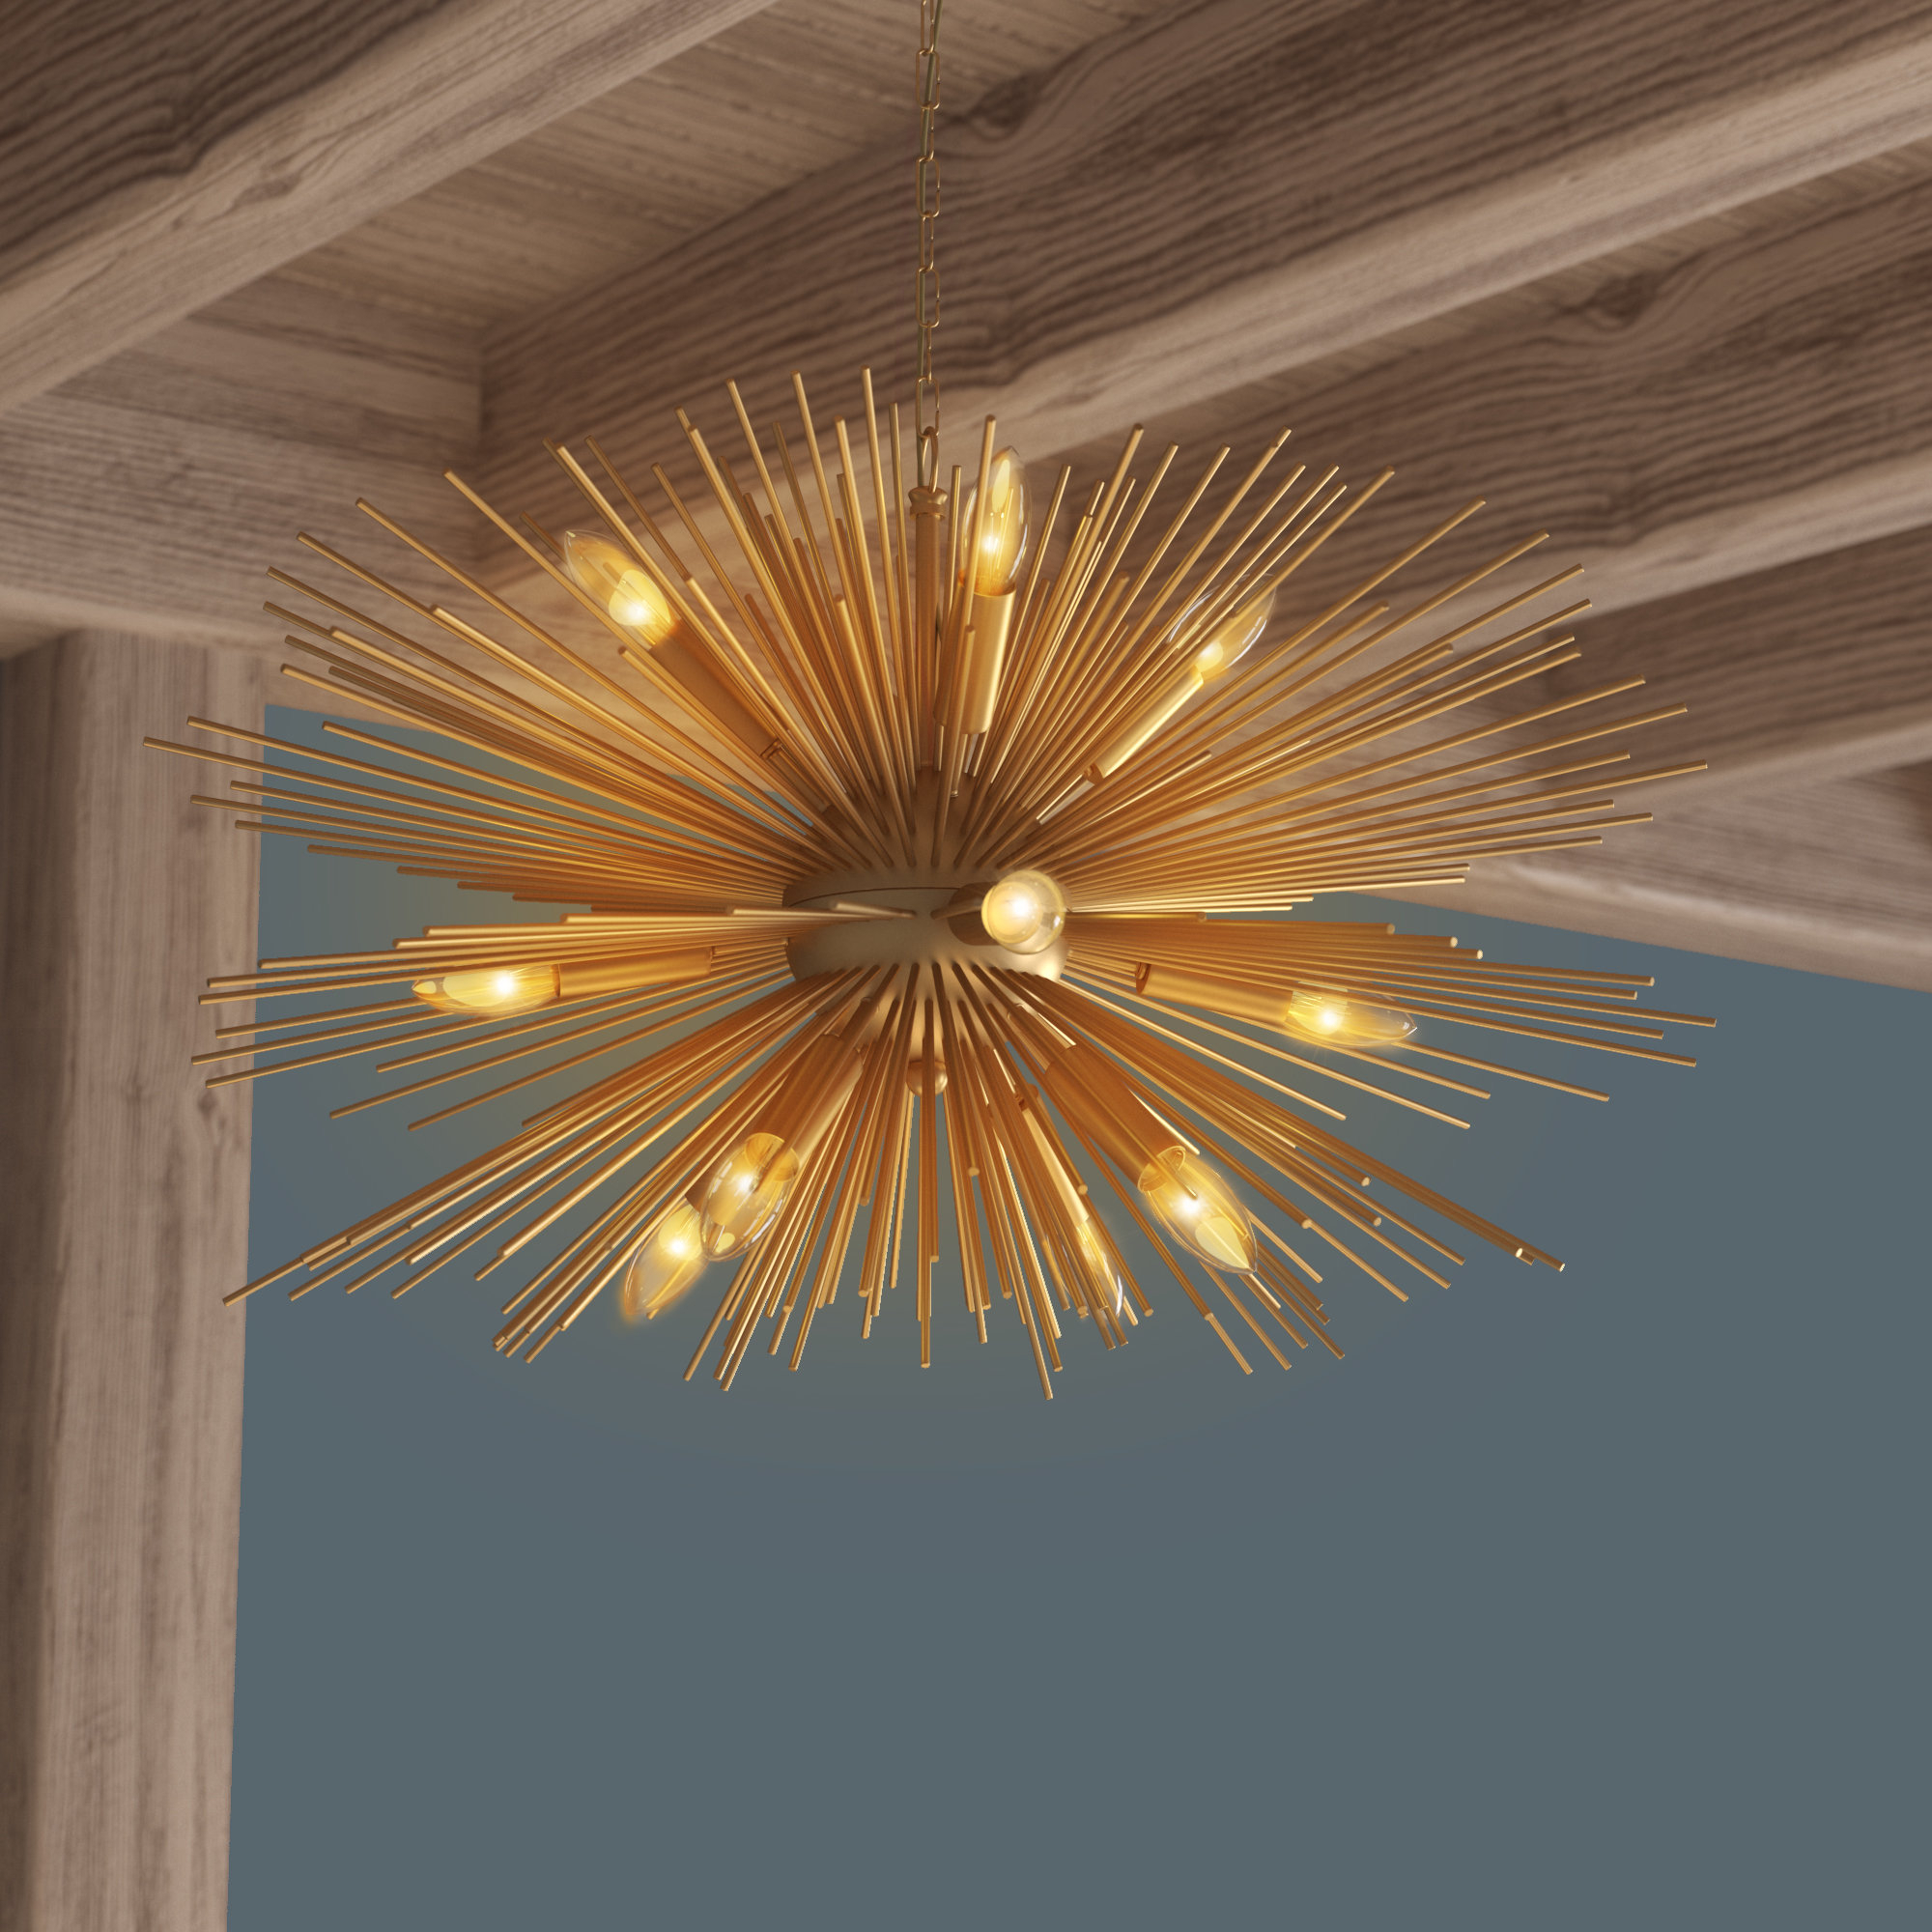 Modern Rustic Interiors Nelly 12 Light Sputnik Chandelier Regarding Recent Nelly 12 Light Sputnik Chandeliers (View 5 of 20)